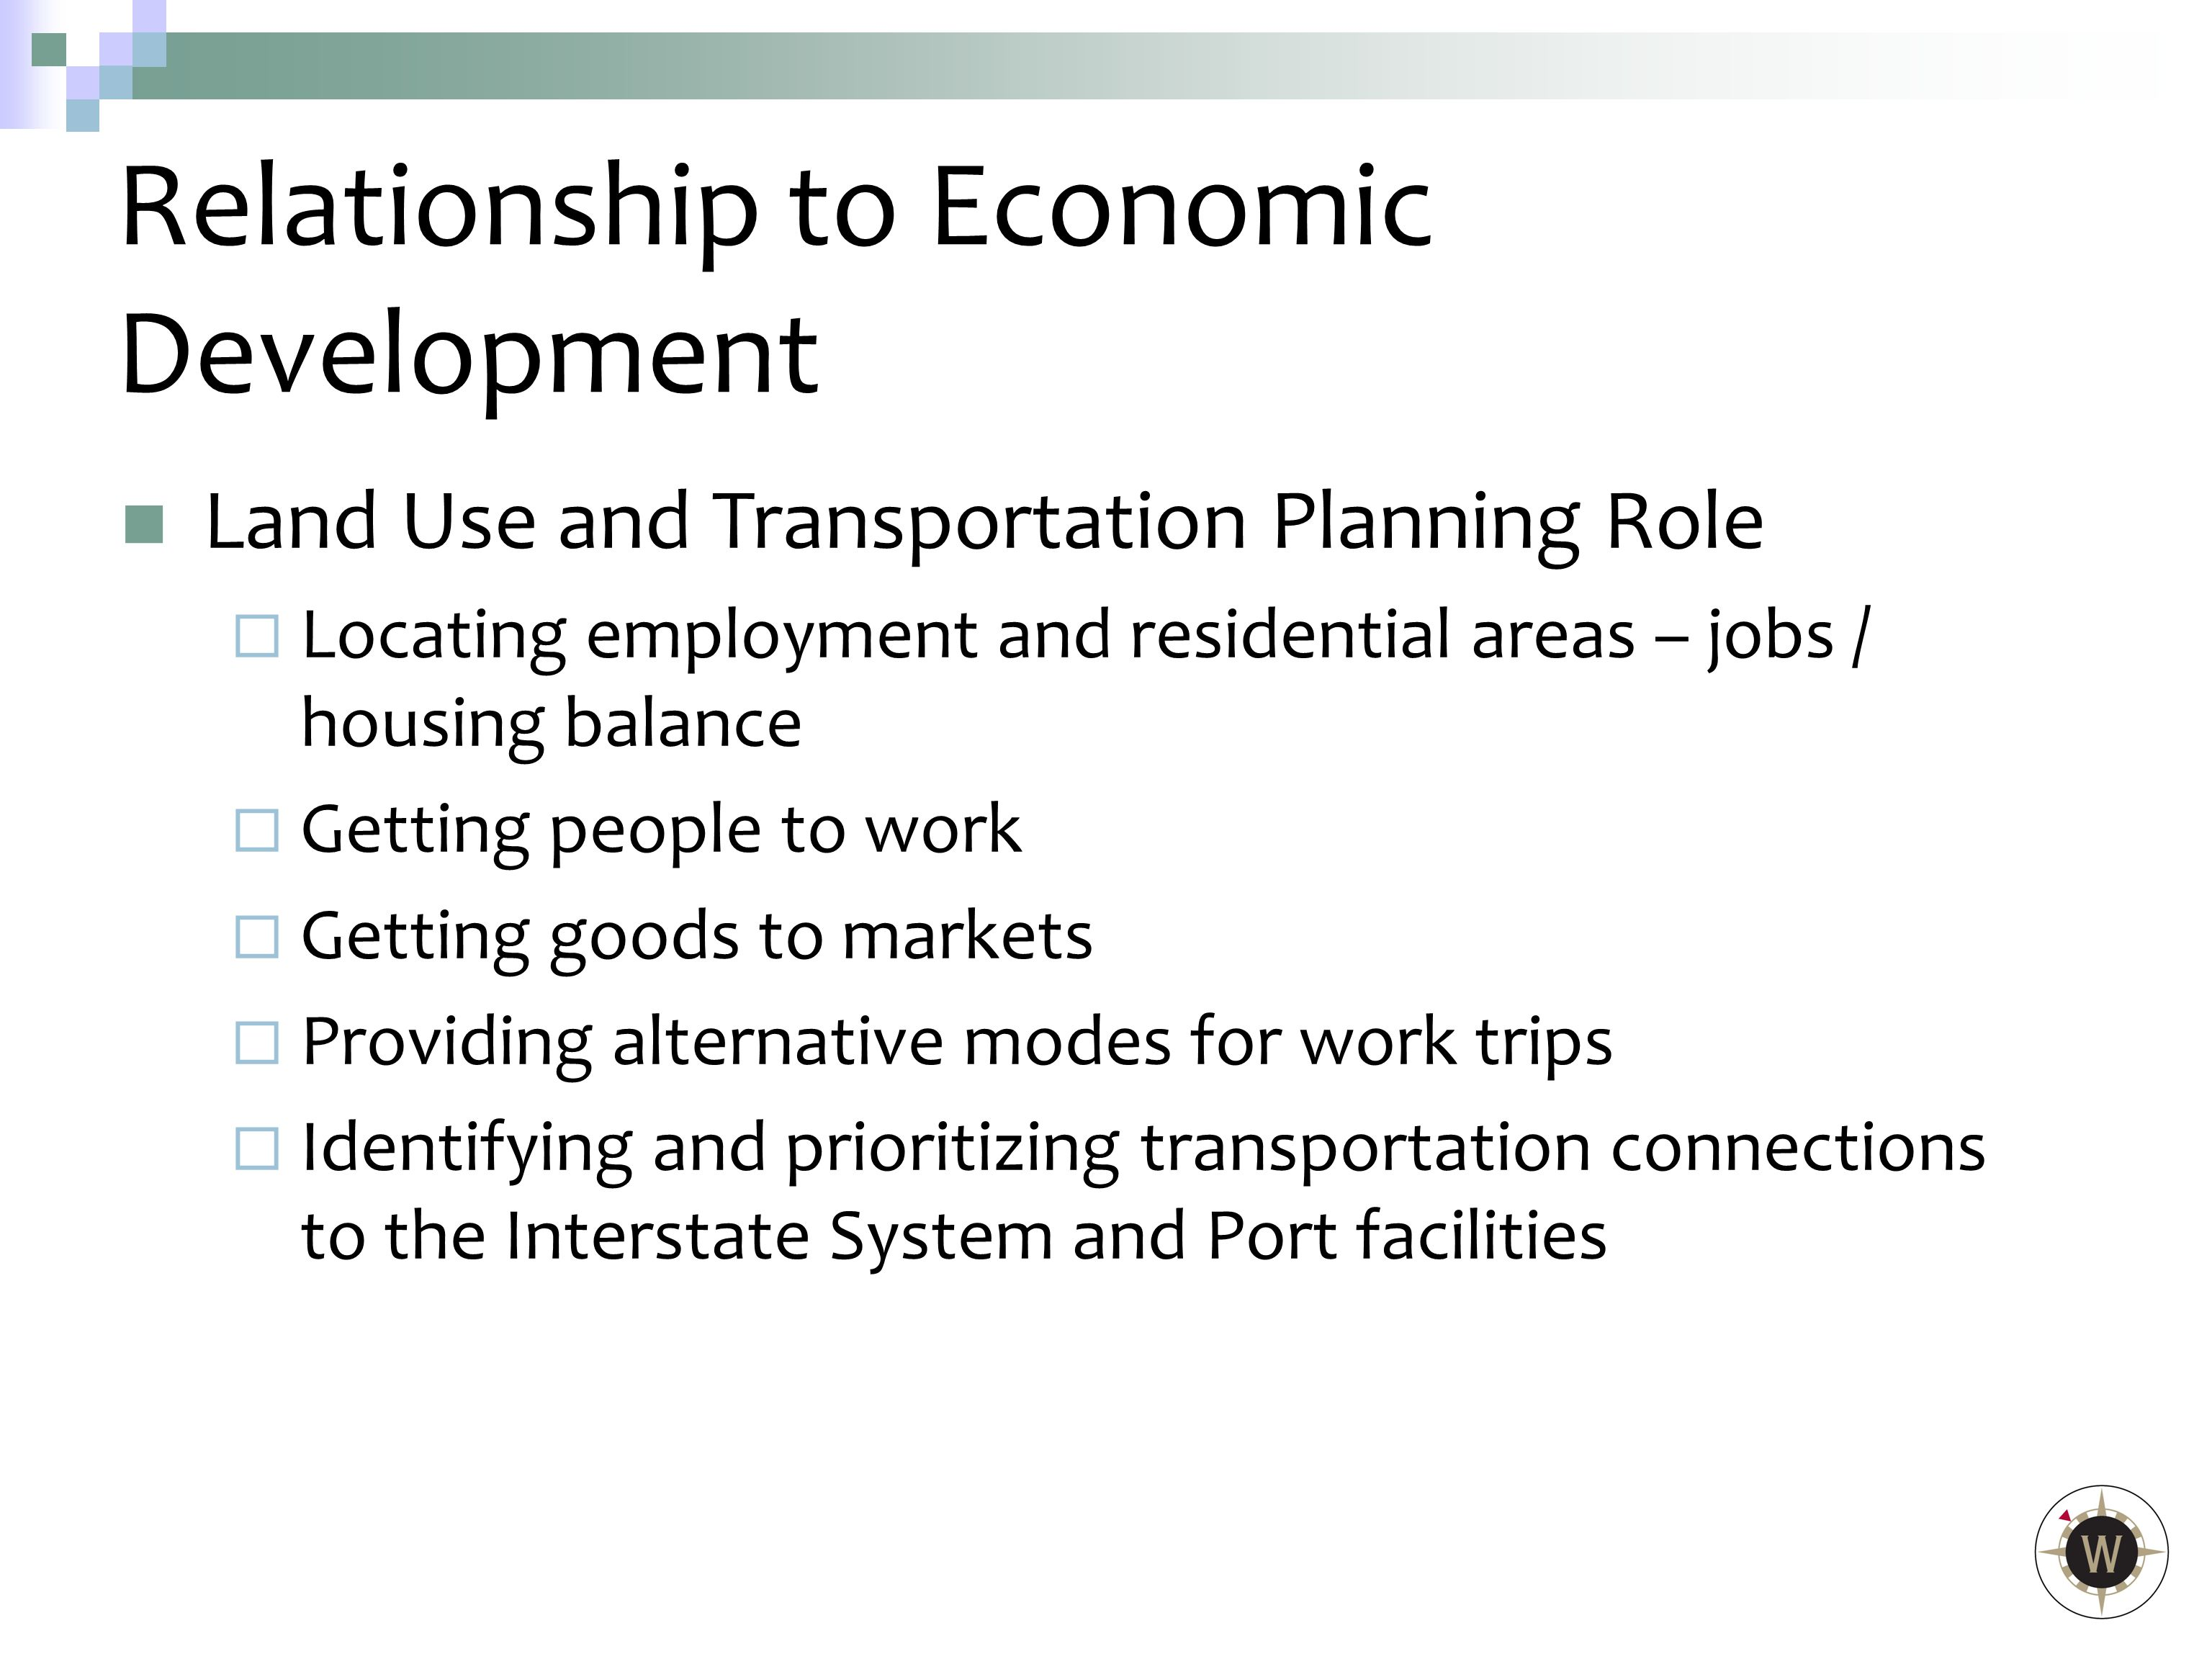 Land Use and Transportation Planning Role  Locating employment and residential areas – jobs / housing balance  Getting people to work  Getting goods to markets  Providing alternative modes for work trips  Identifying and prioritizing transportation connections to the Interstate System and Port facilities Relationship to Economic Development